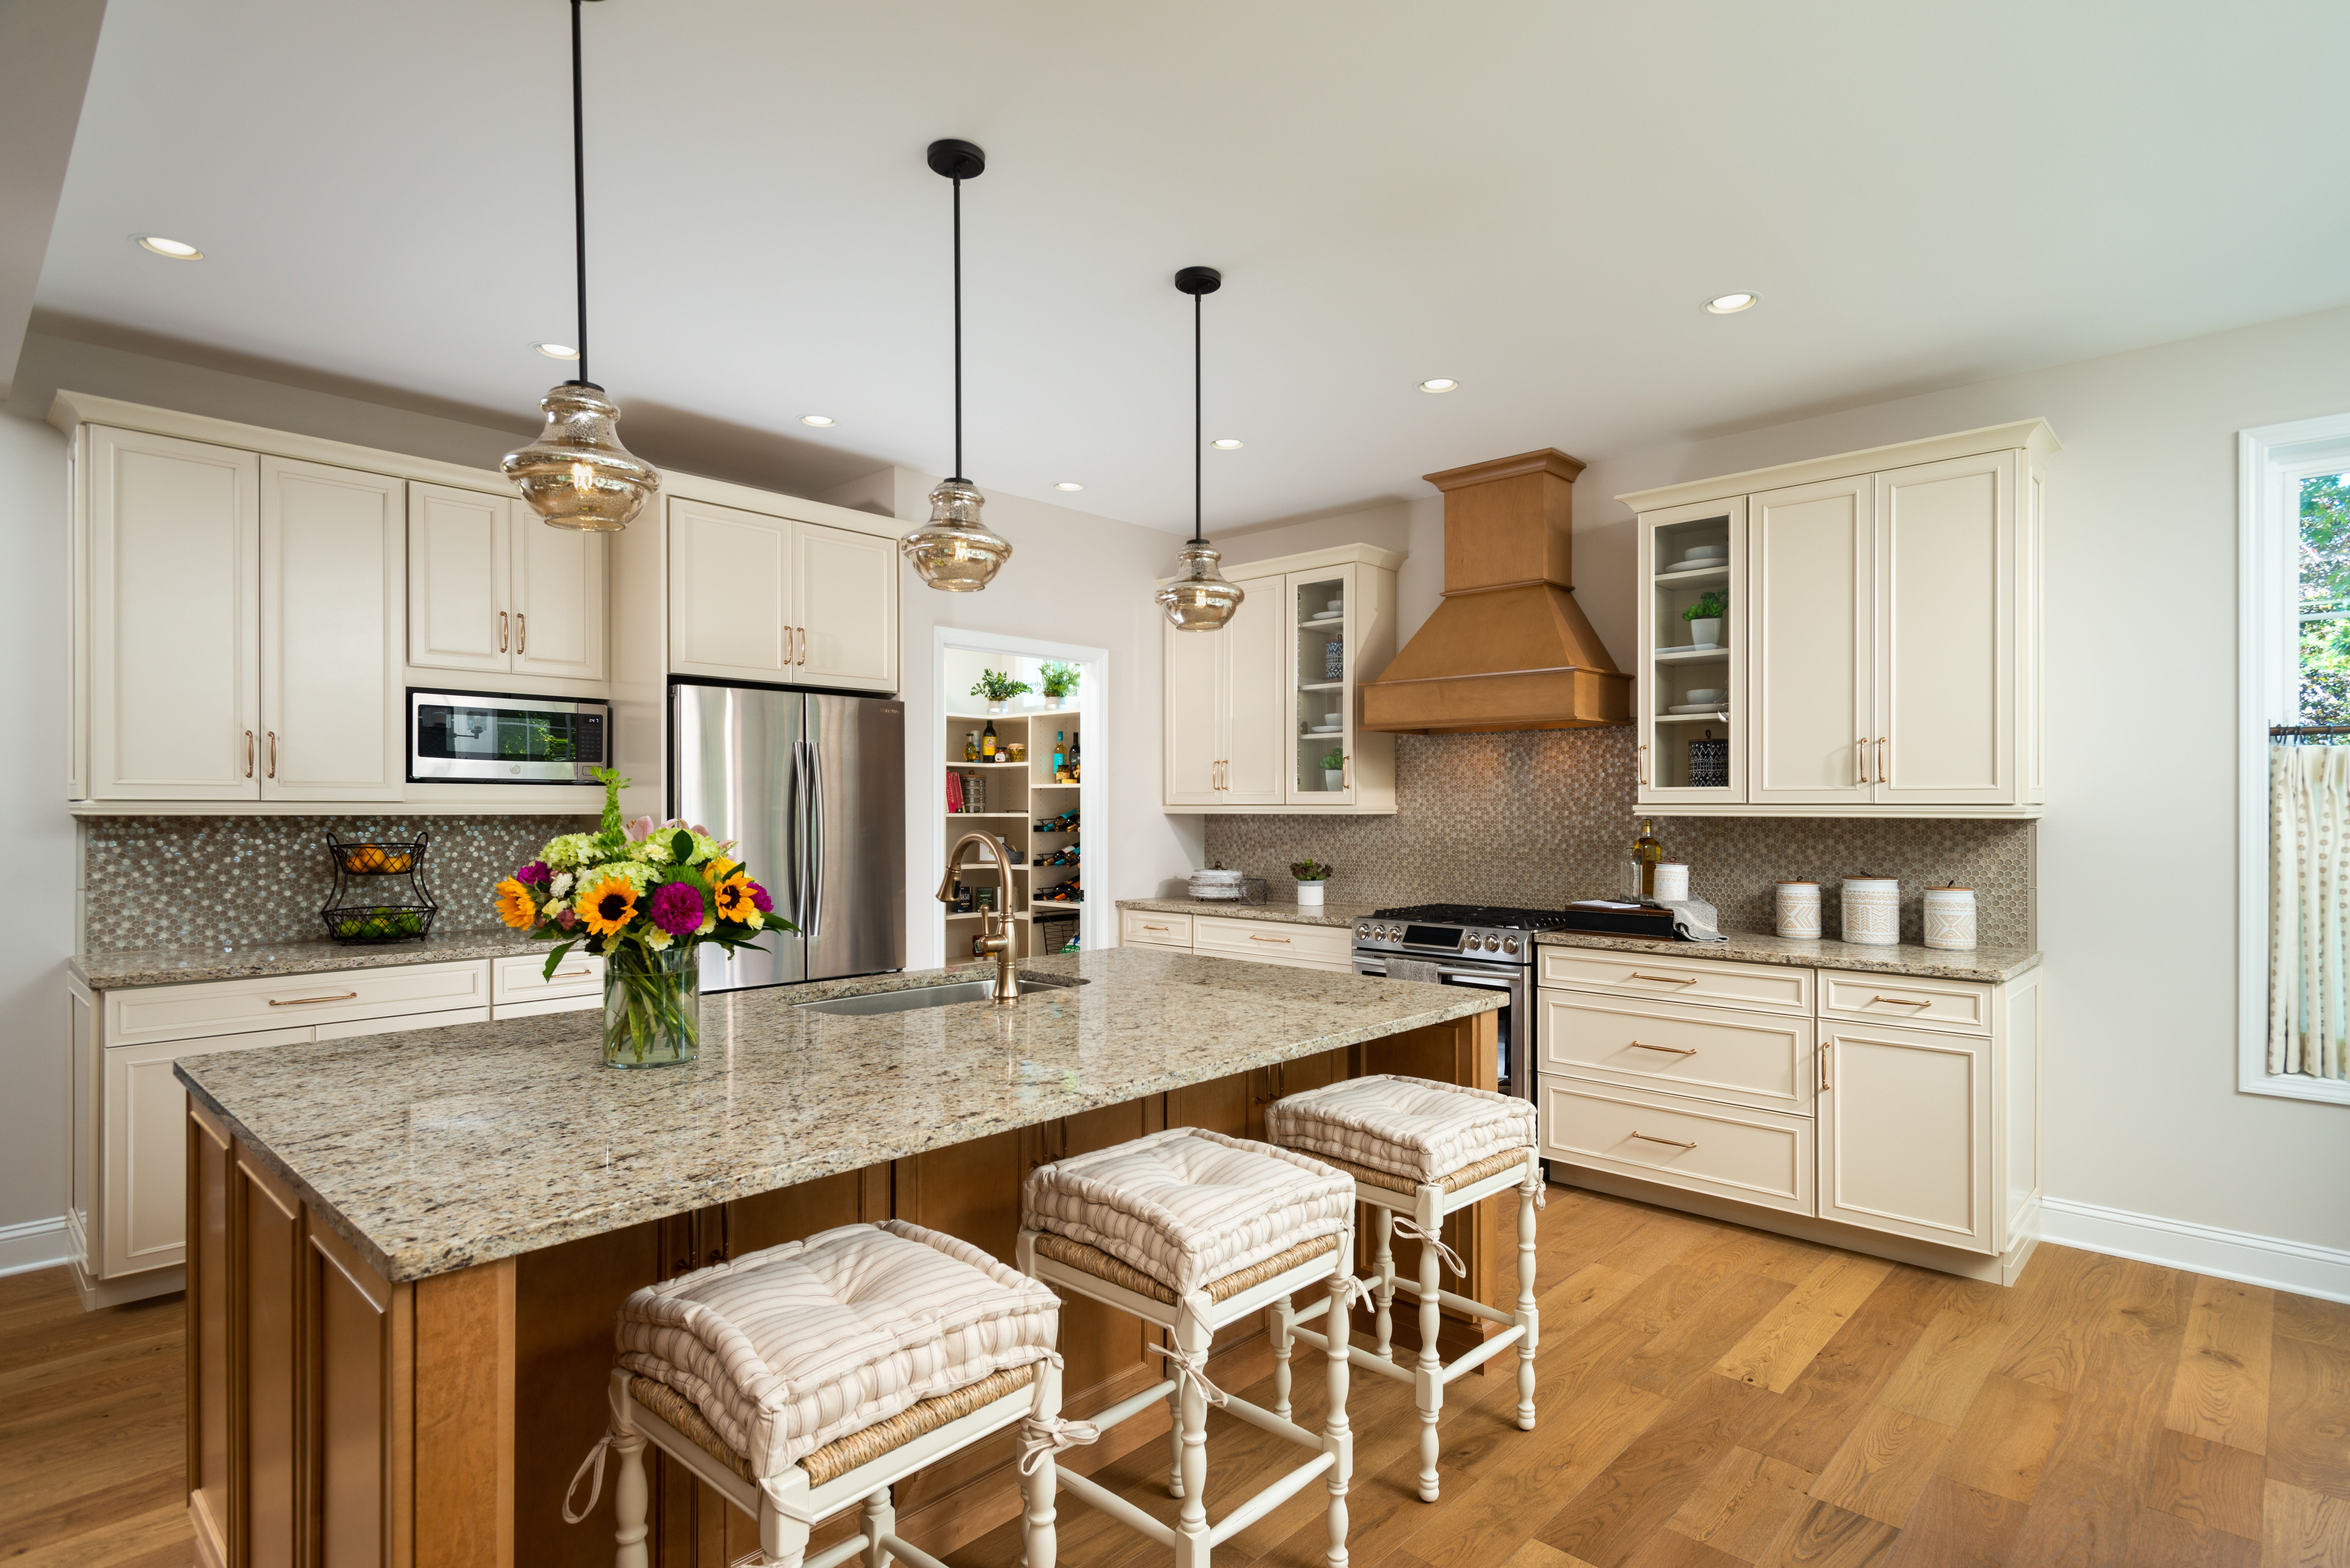 Kitchen featured in the Weston II By Belmonte Builders in Albany-Saratoga, NY